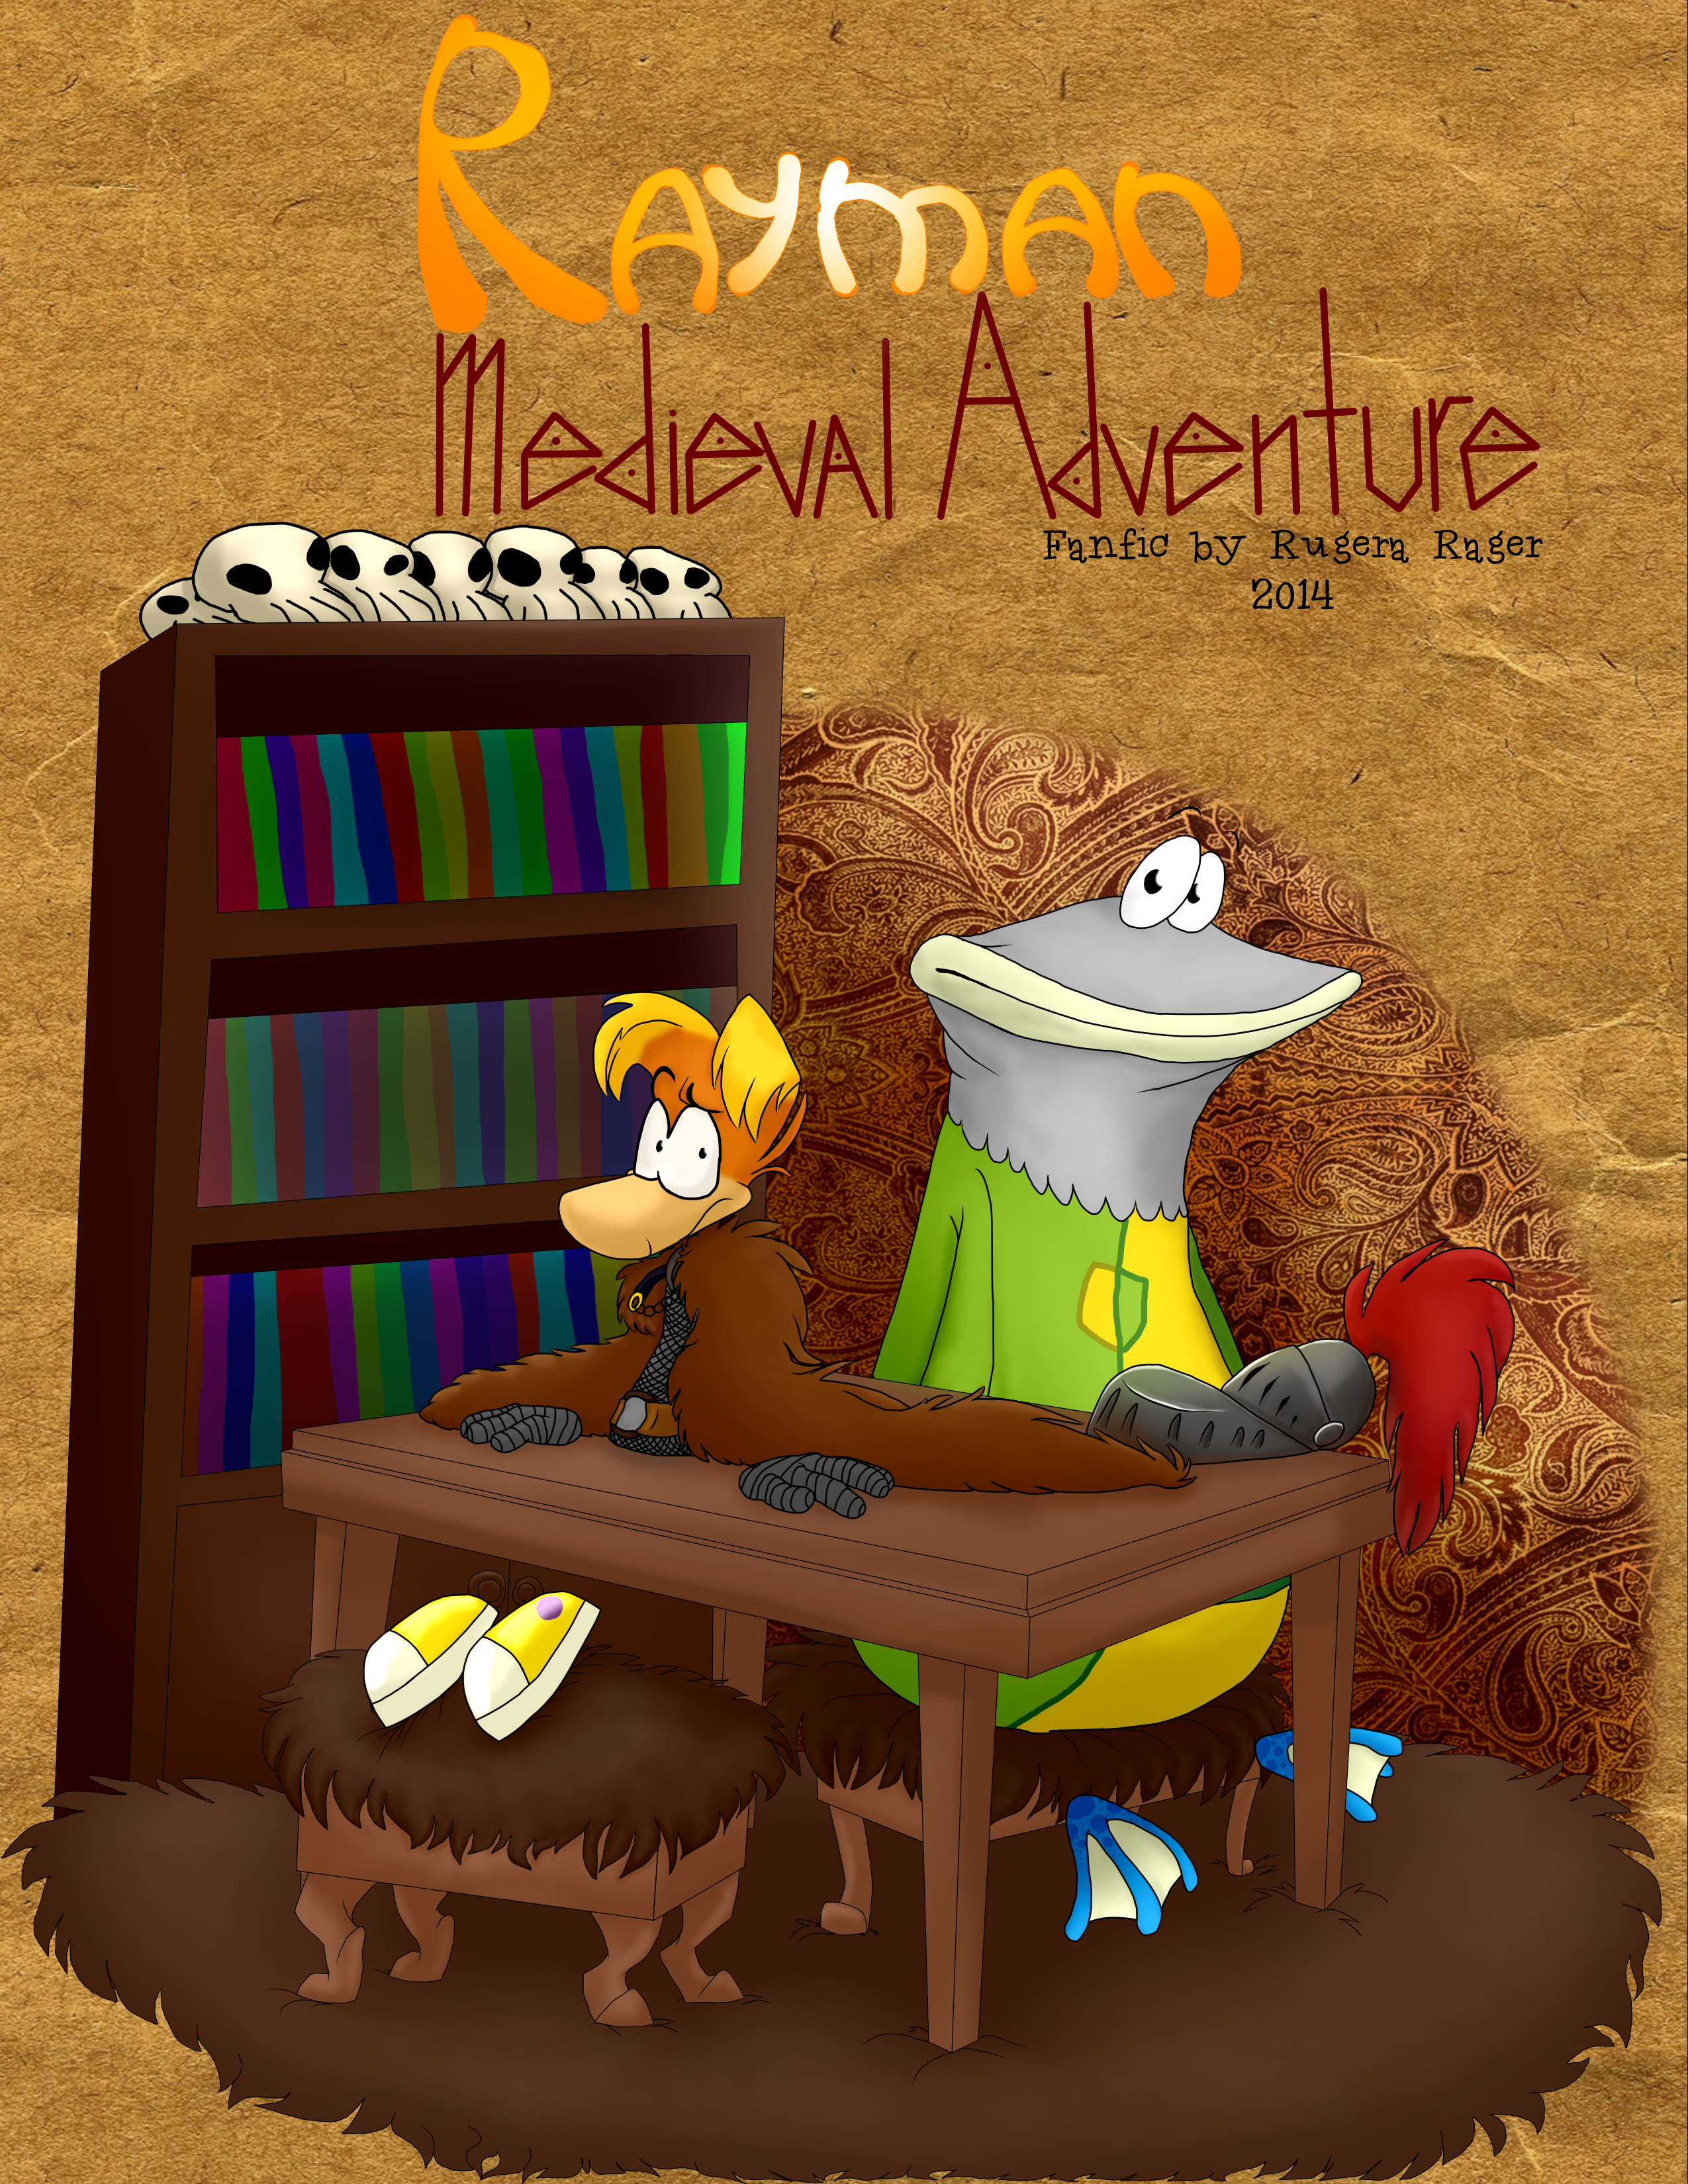 Rayman : Medieval Adventure (fanfic's cover)